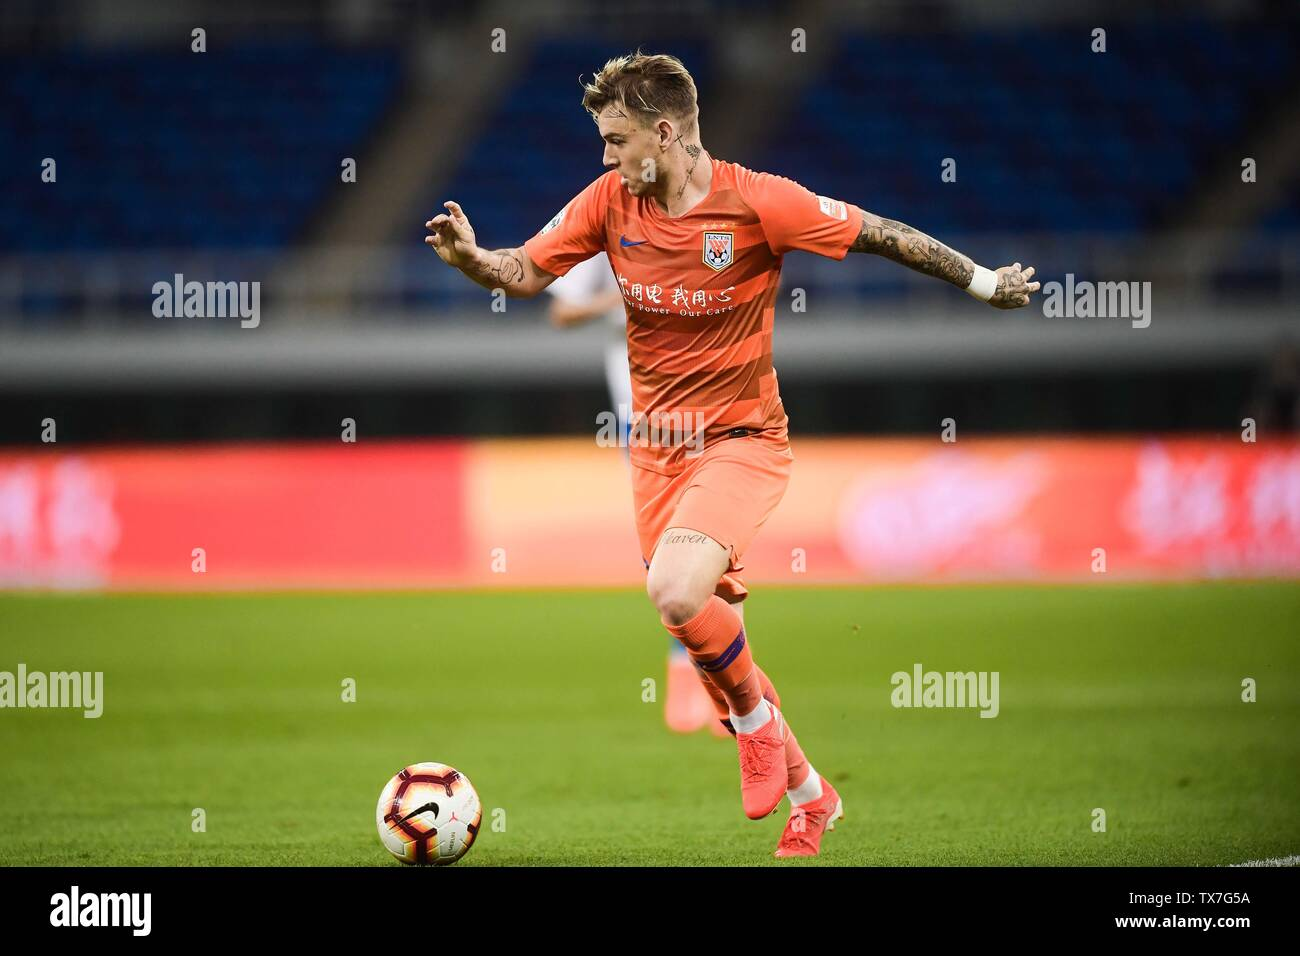 Brazilian football player Roger Krug Guedes, known as Roger Guedes of Shandong Luneng Taishan dribbles against Tianjin TEDA in their 14th round match during the 2019 Chinese Football Association Super League (CSL) in Tianjin, China, 22 June 2019. Tianjin TEDA defeated Shandong Luneng Taishan 2-0. Stock Photo